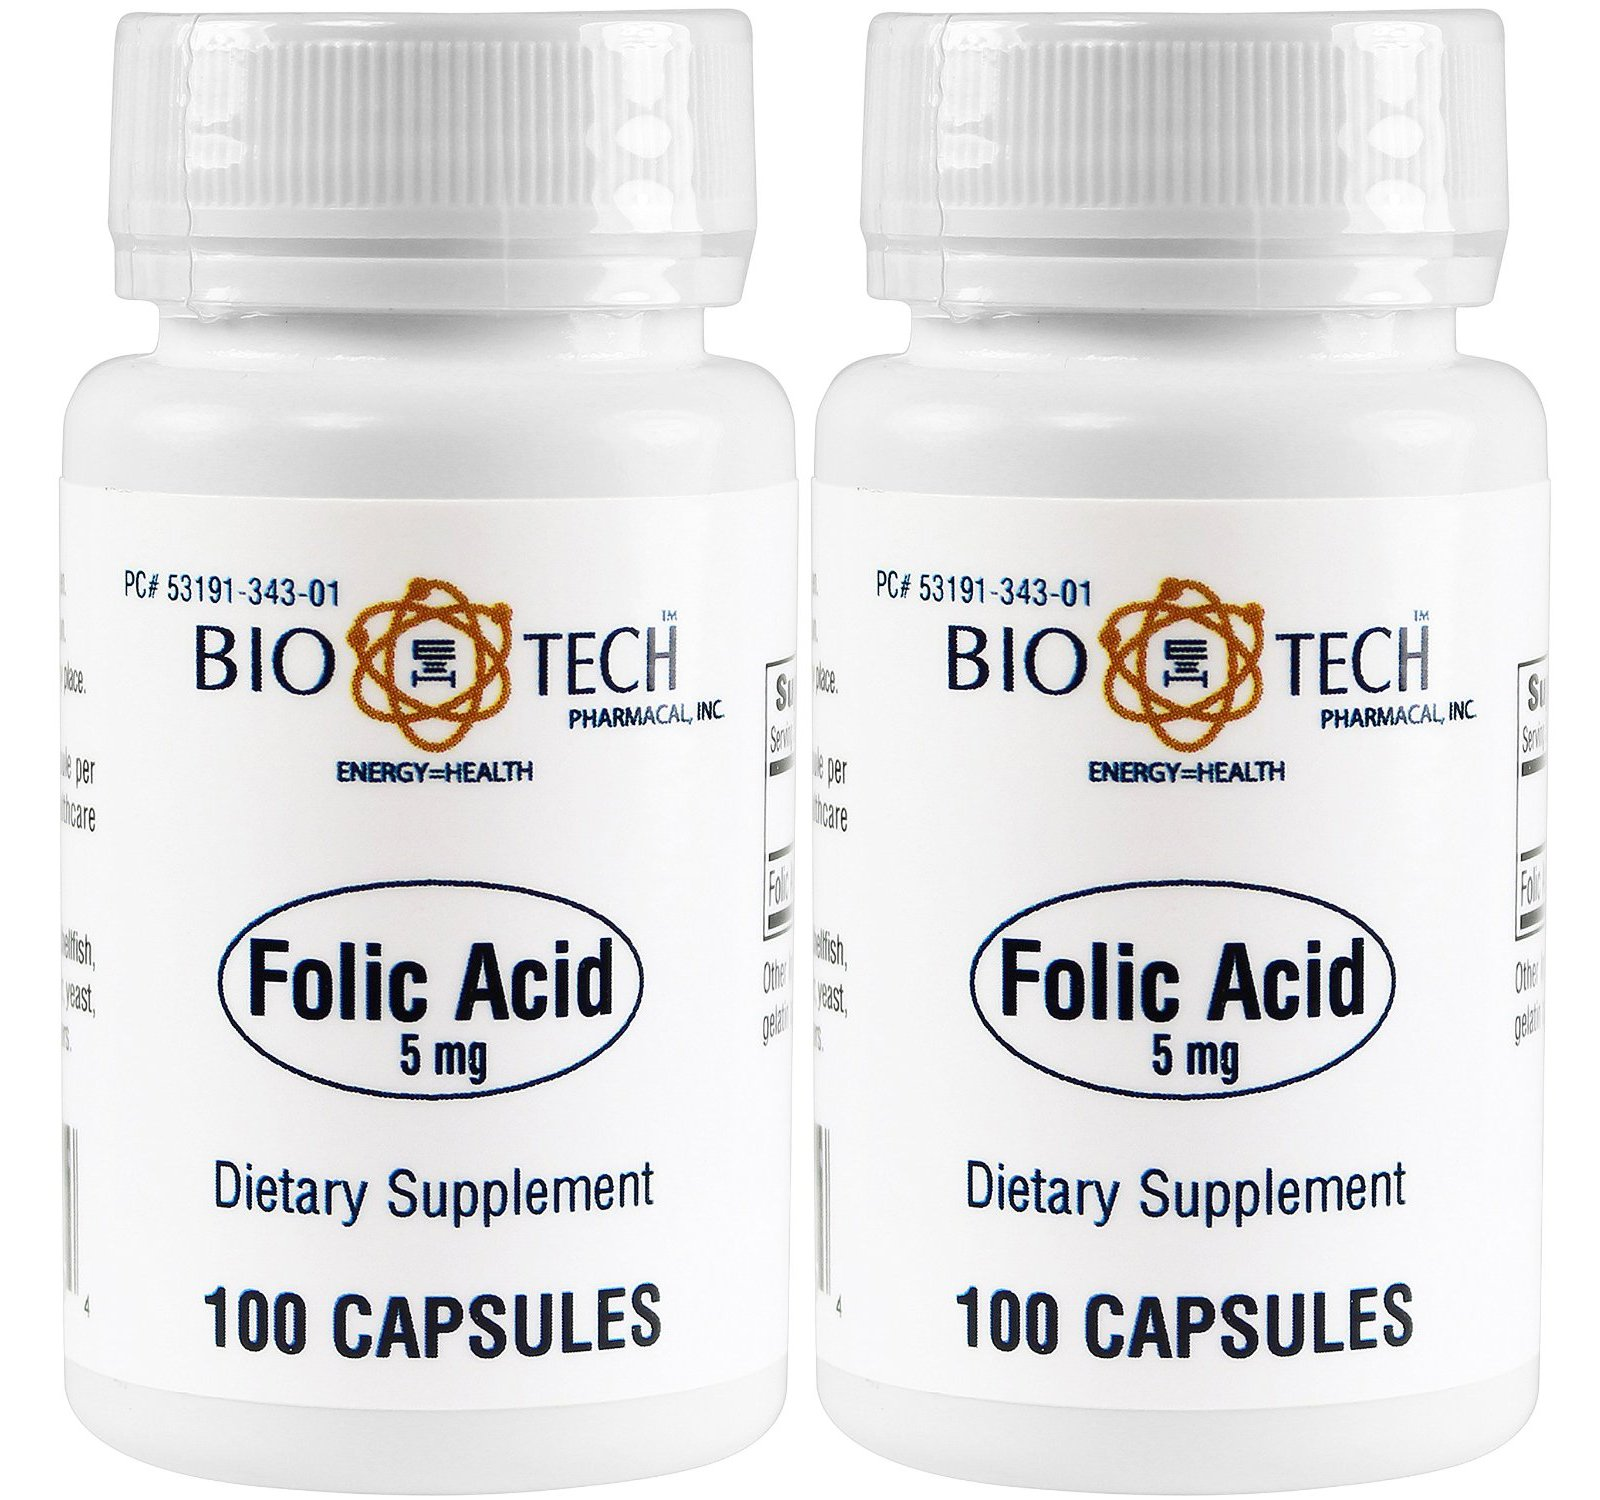 Folic Acid 5mg - BioTech Pharmacal - 100 Capsules - Pack of 2 Bottles by BioTech Pharma